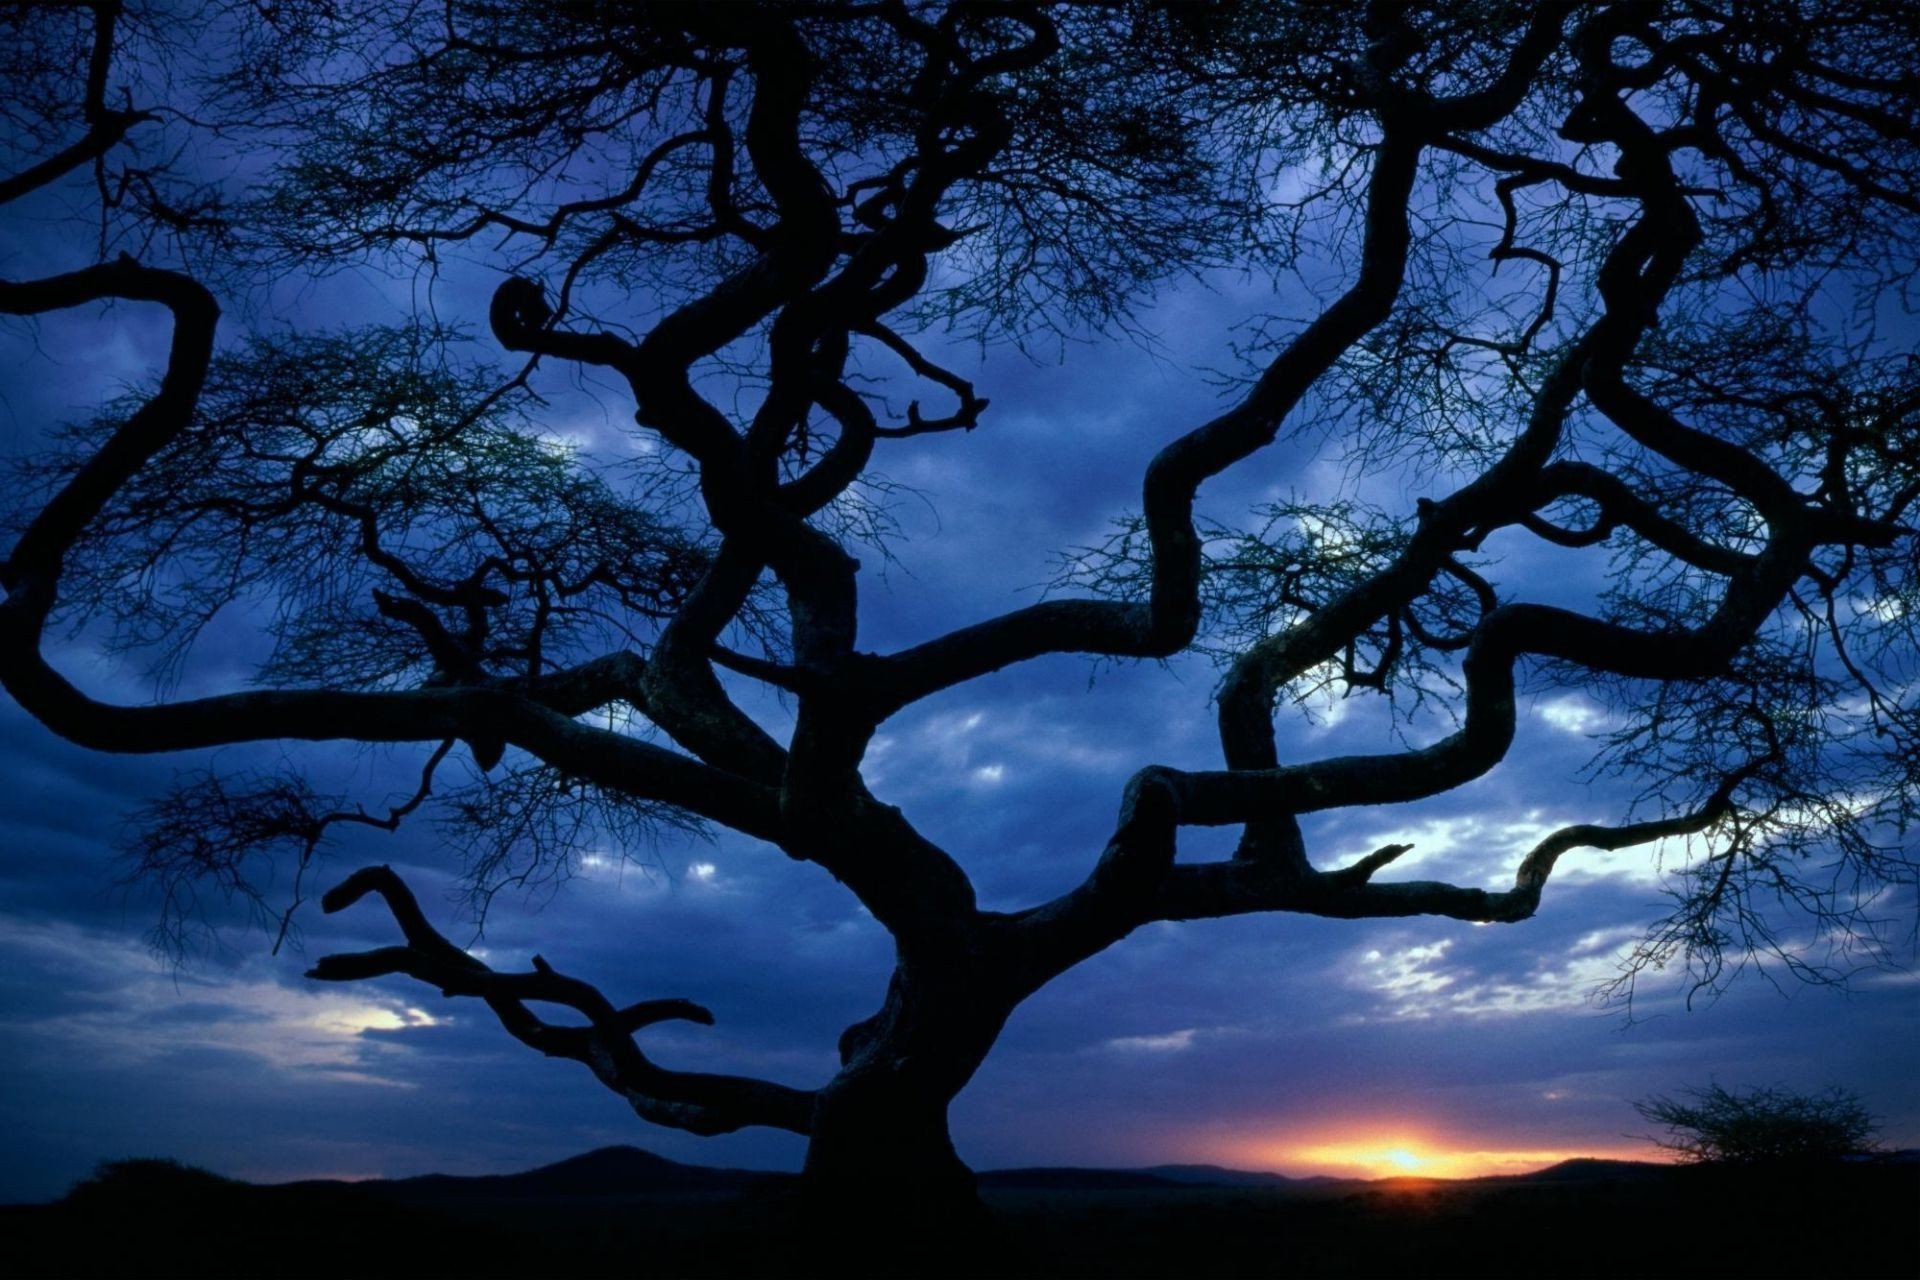 evening crookedly the sunset tree silhouette